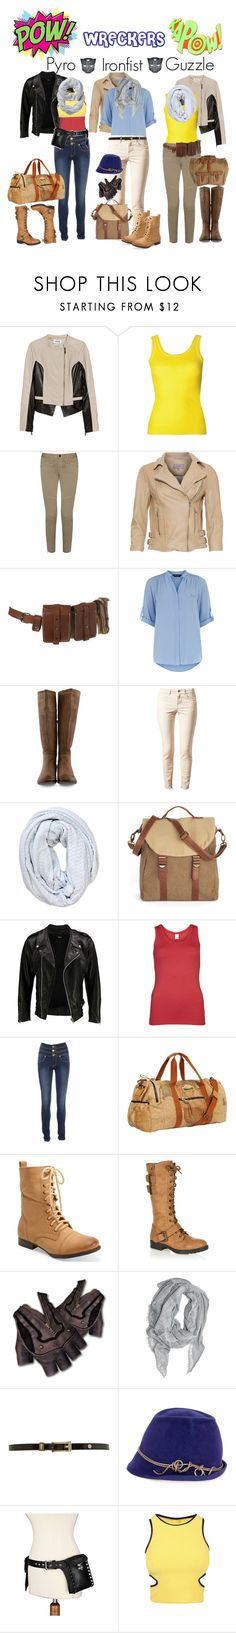 """""""new recruits wreckers"""" by femme-mecha ❤ liked on Polyvore featuring Alice by Temperley, Jean Paul Gaultier Soleil, Tory Burch, Dorothy Perkins, Fly LONDON, STELLA McCARTNEY, VIPARO, VILA, AX Paris and Alviero Martini 1° Classe"""